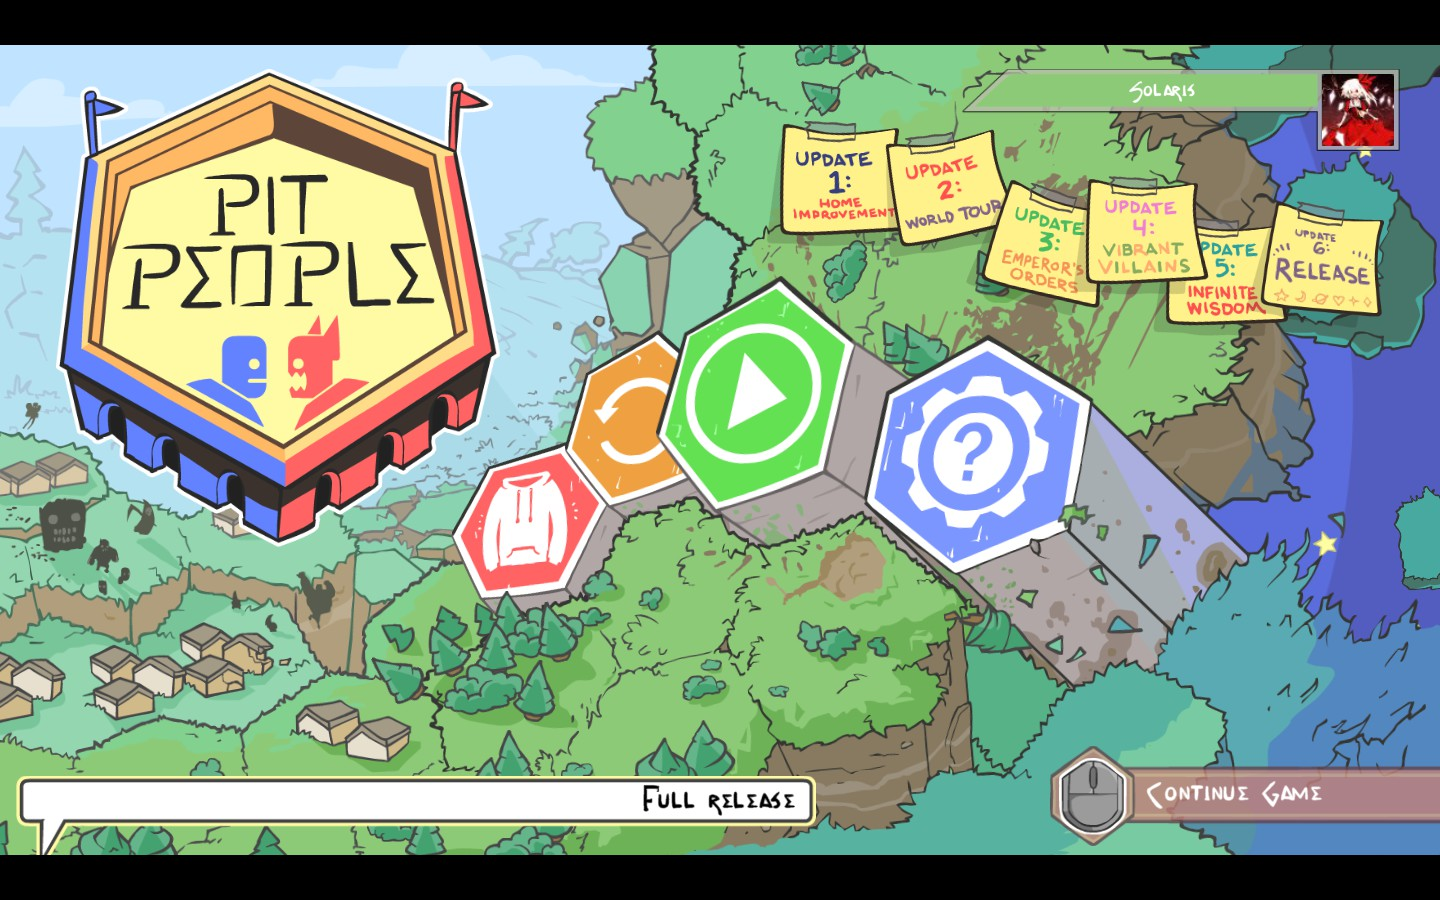 Pit people pc review chalgyrs game room hello glorious adventurer and welcome to the world of pit people brought to you by the behemoth those same wonderful people that brought us castle gumiabroncs Image collections